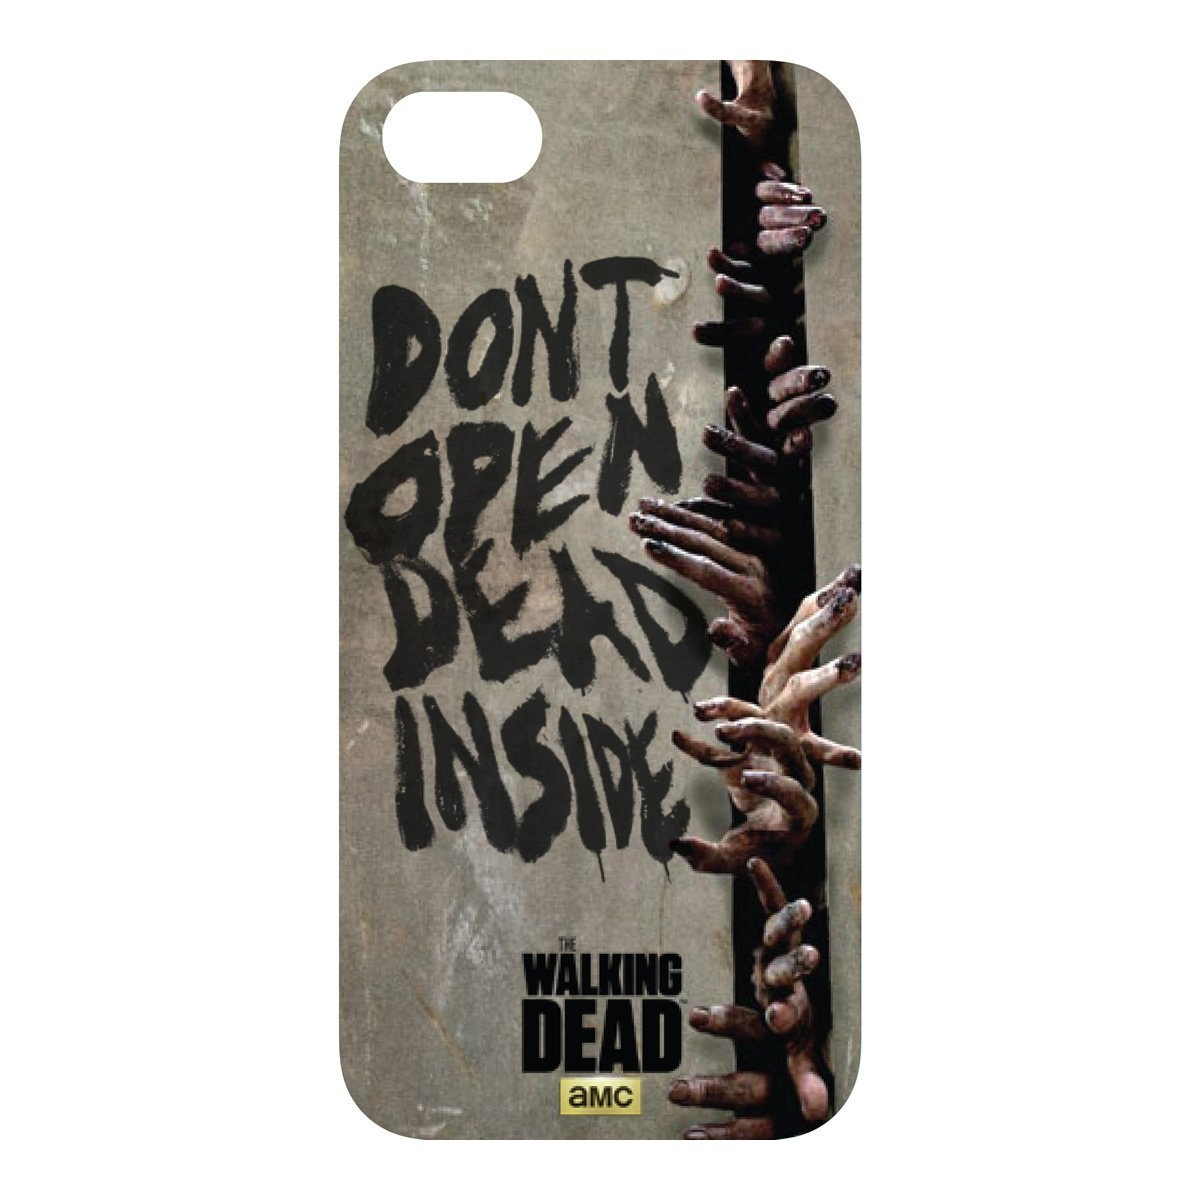 official walking dead iphone 6 case